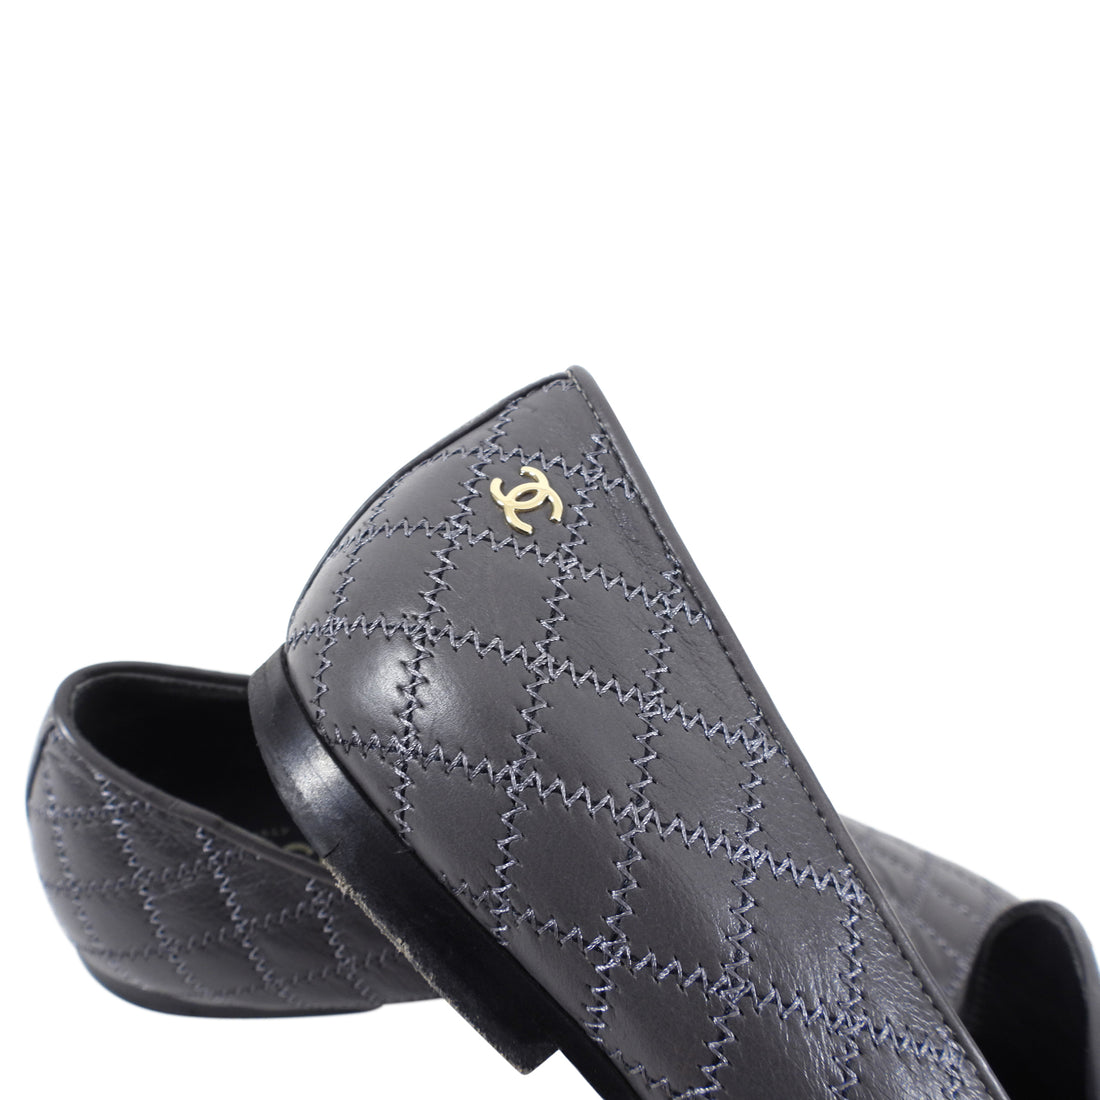 Chanel Grey Quilt Flat Loafer Slippers with CC Logo - 38.5 / 8